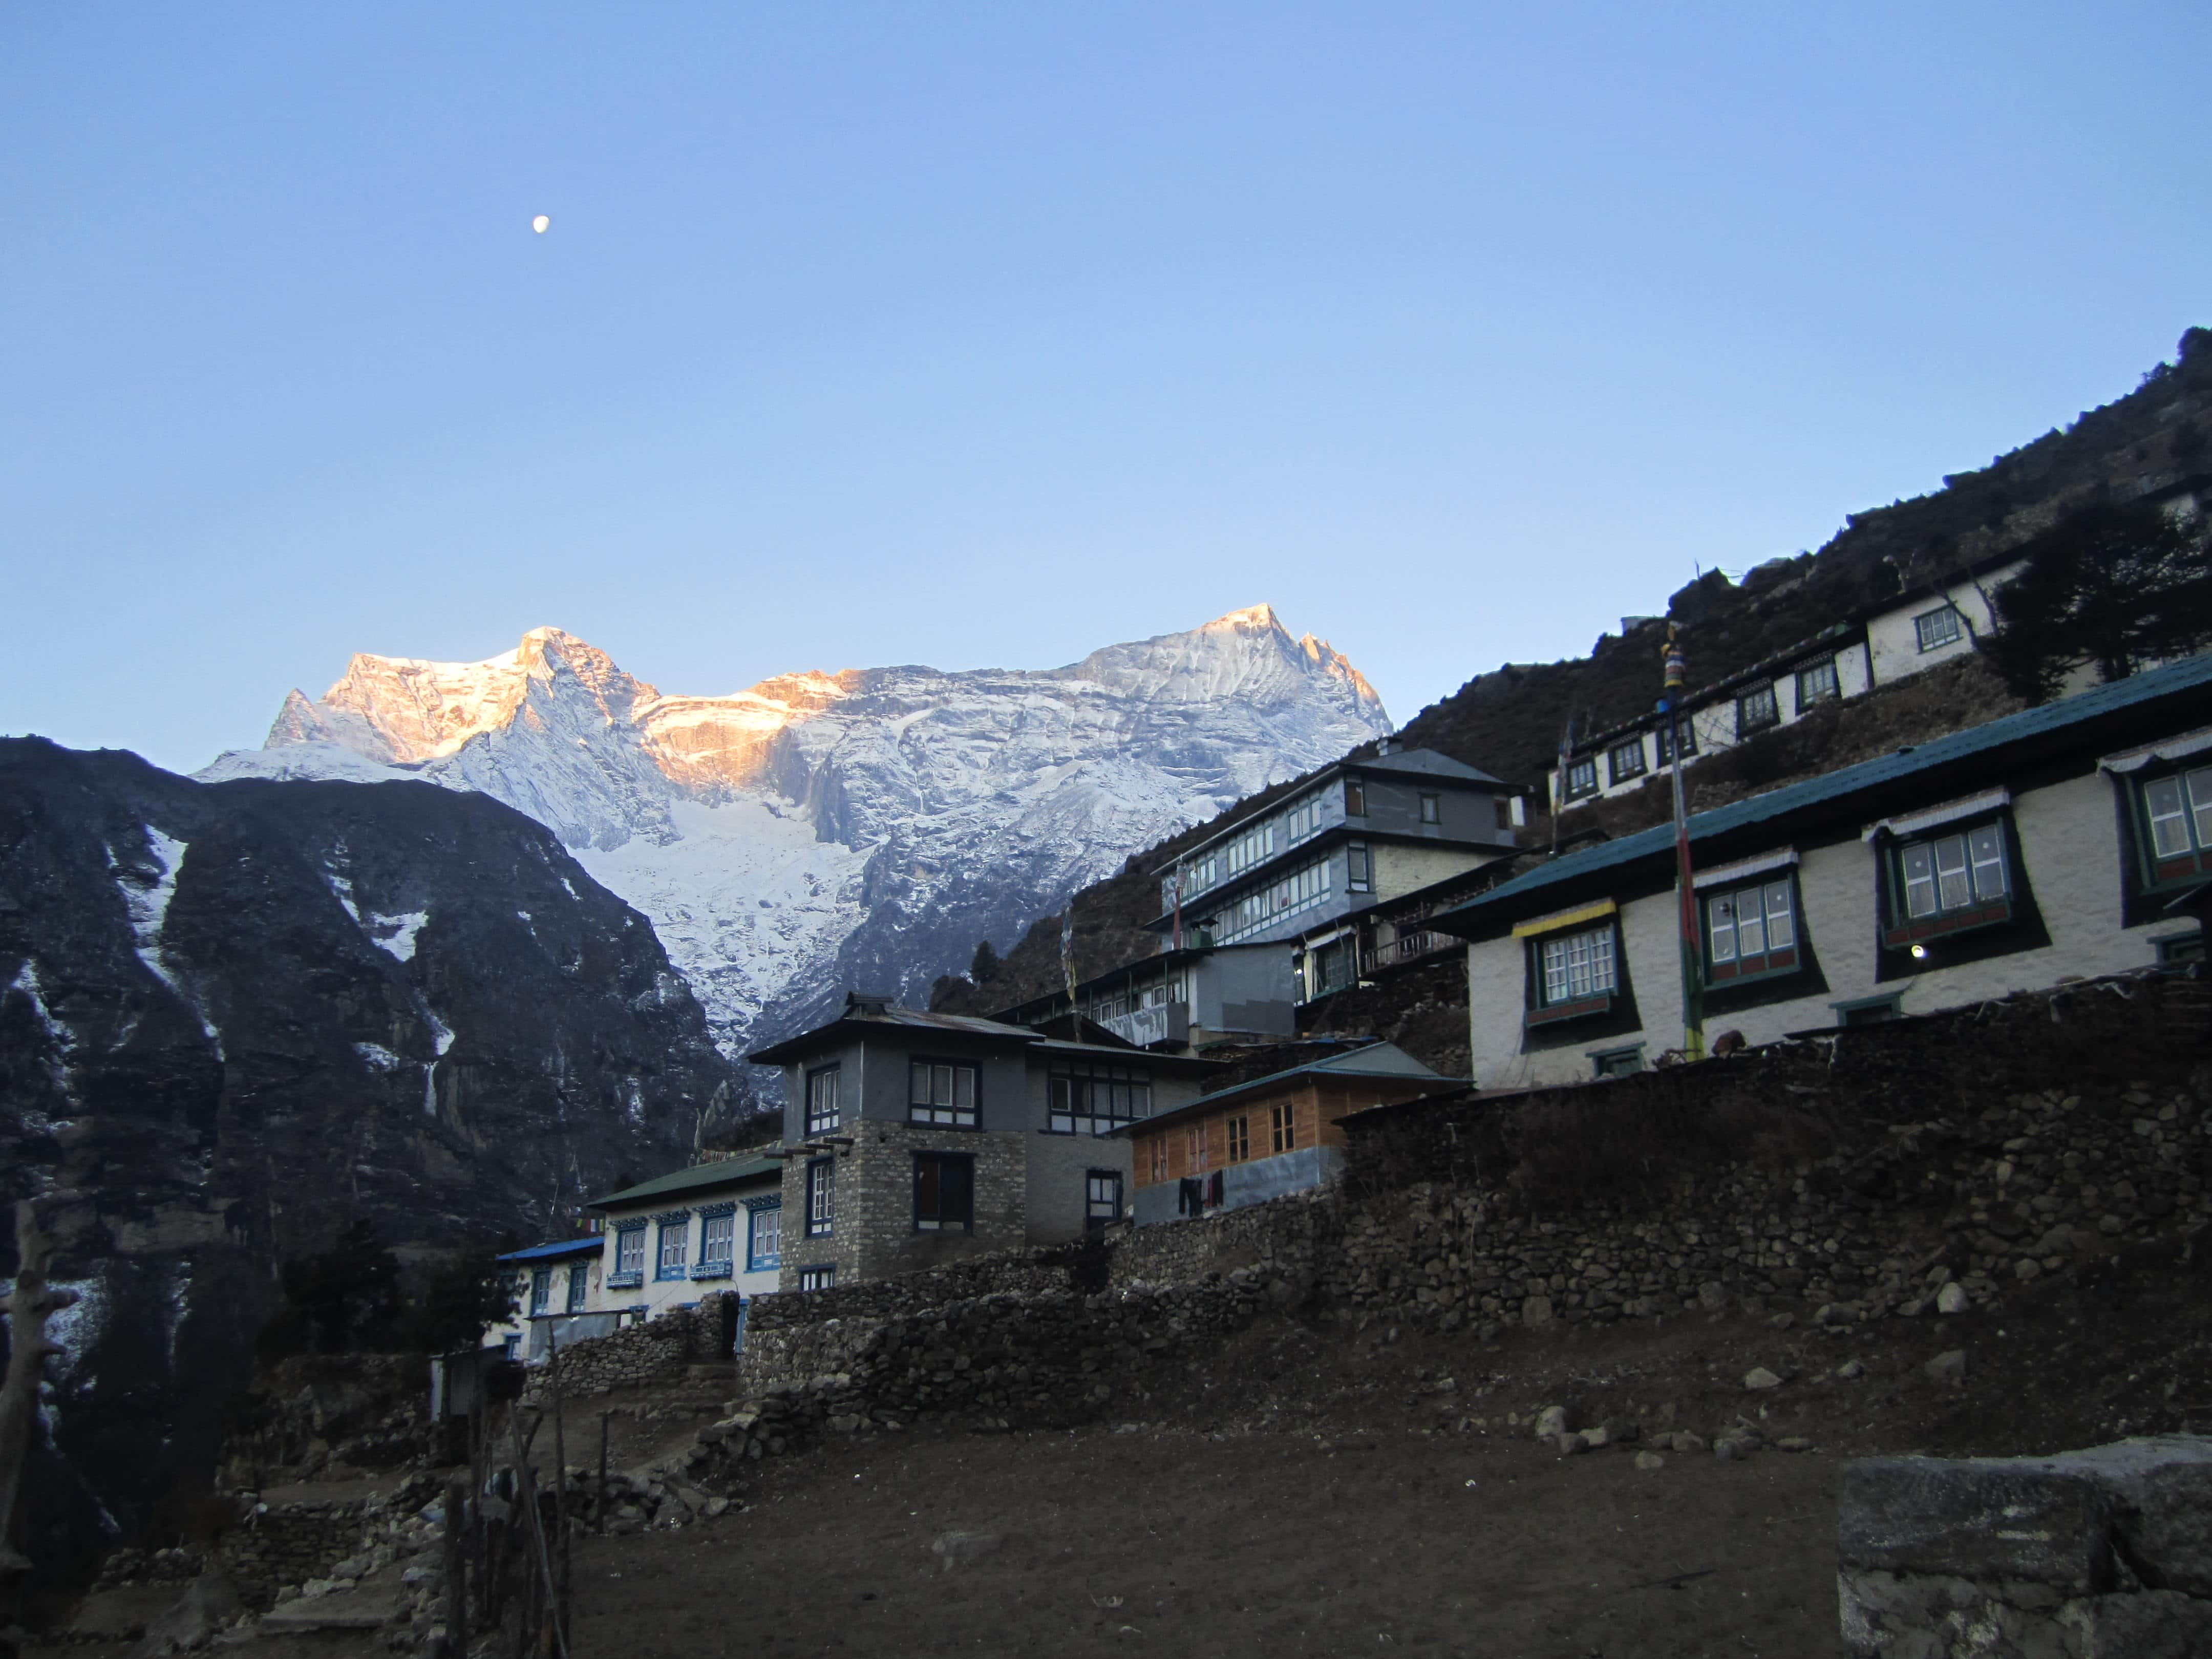 Budget Everest base camp trek-Namche Bazaar (3444 m)